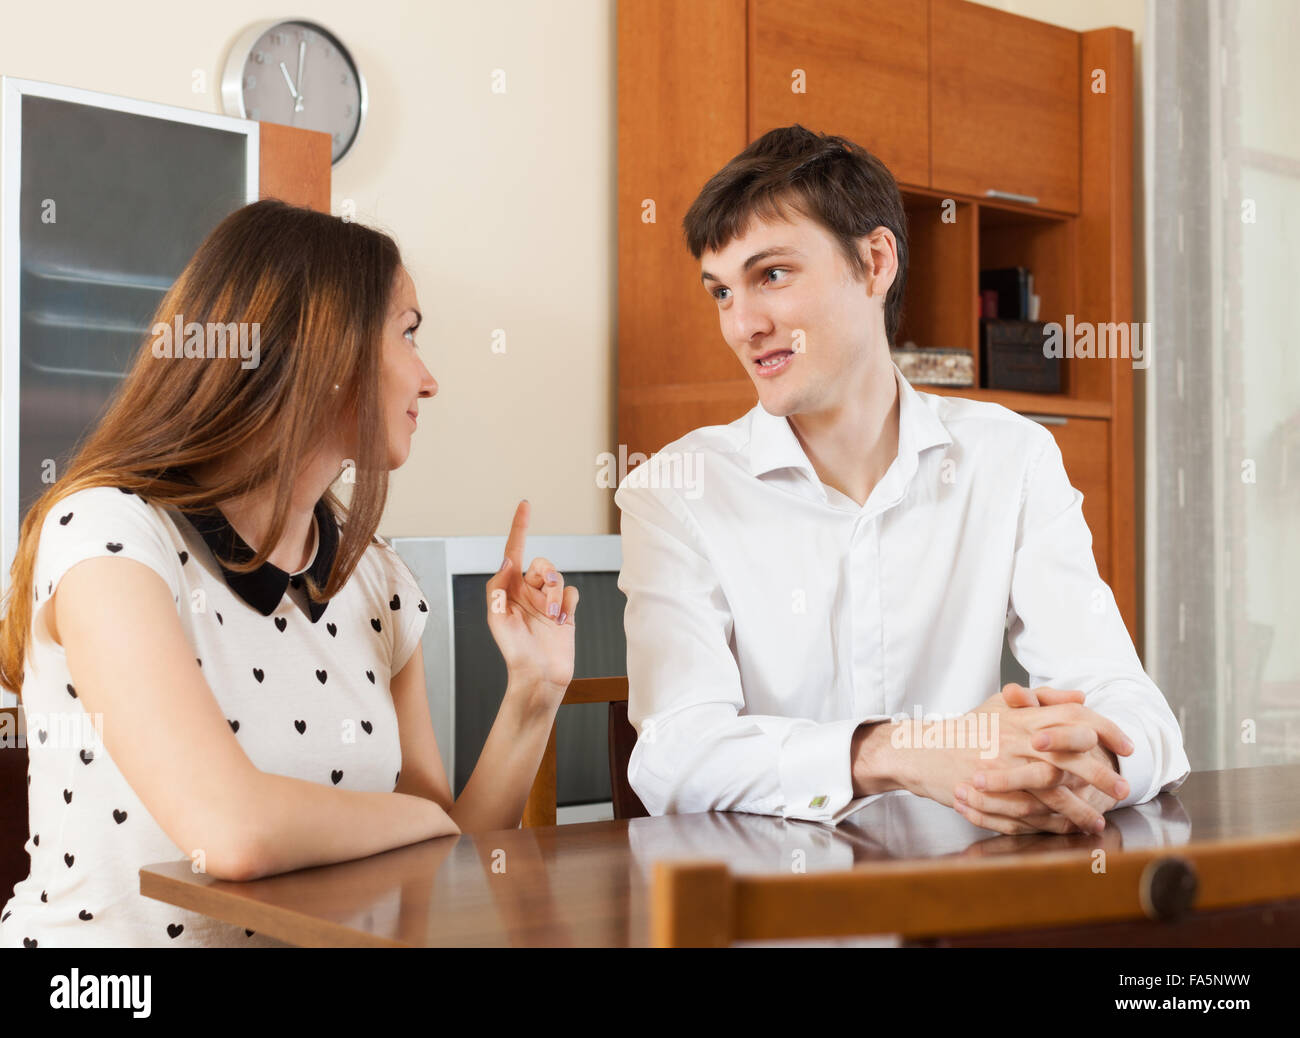 How To Have A Serious Talk With A Guy